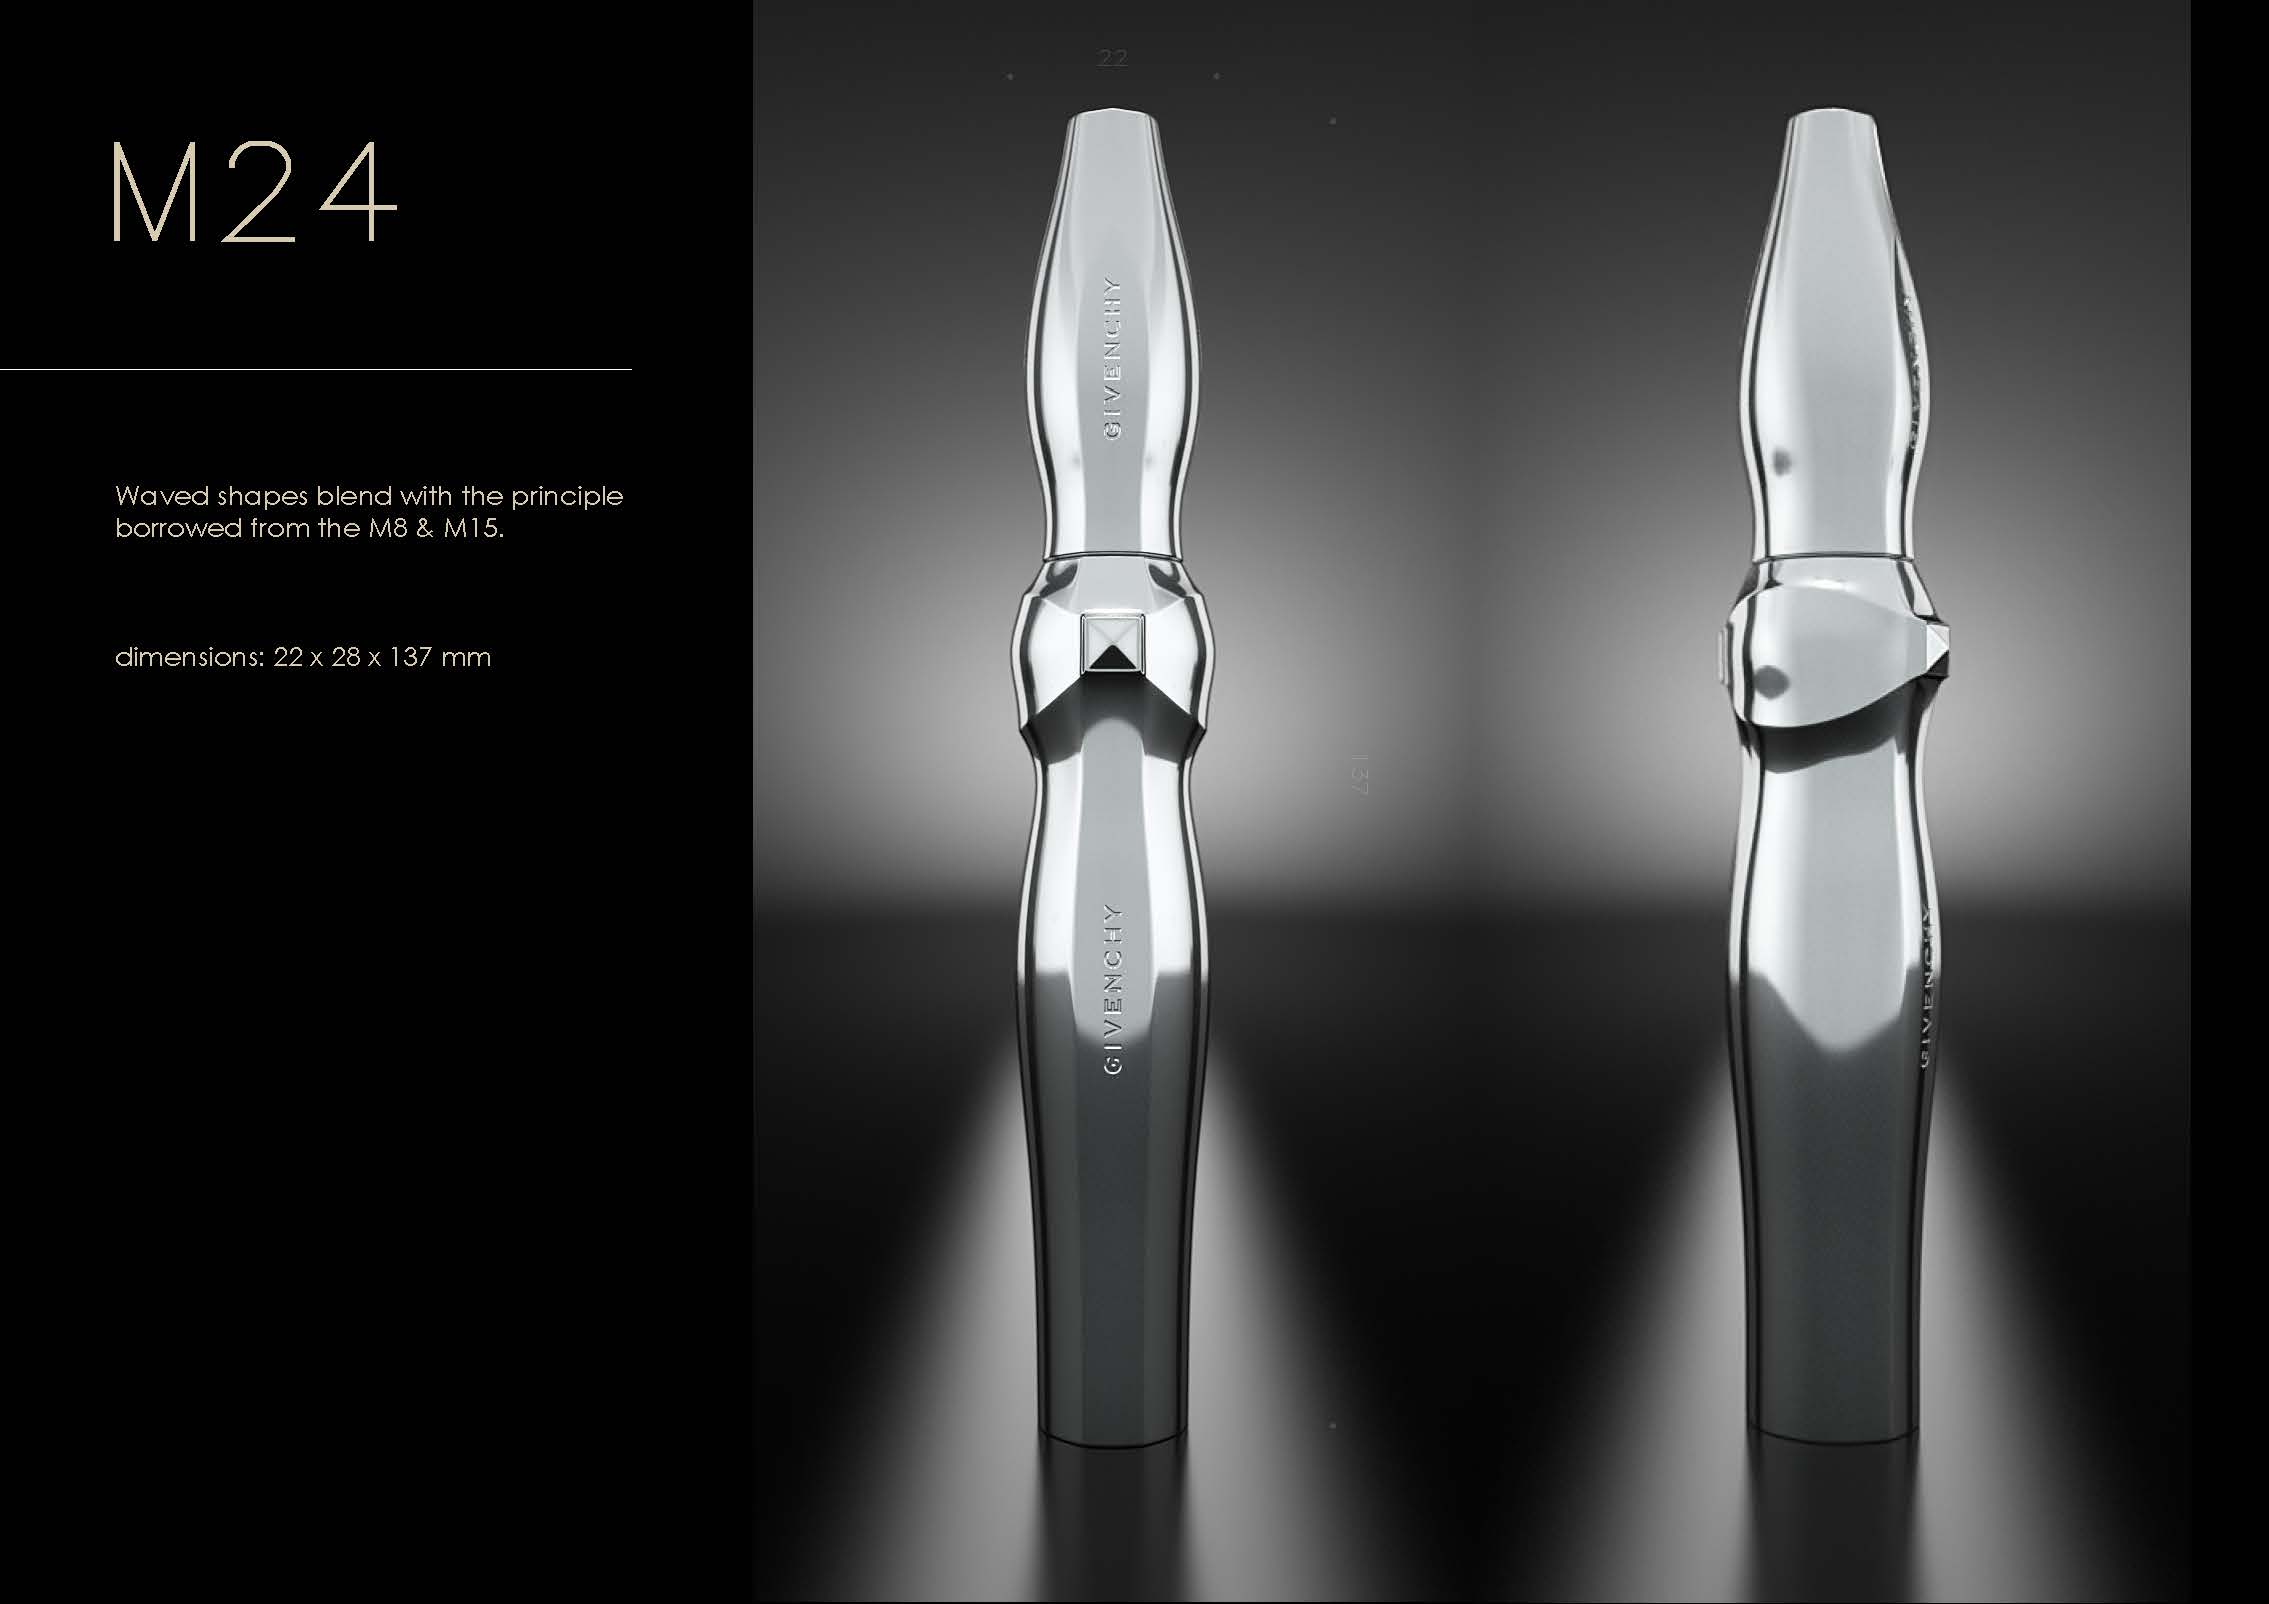 Givenchy mascaras w dimensions, I_Page_50.jpg